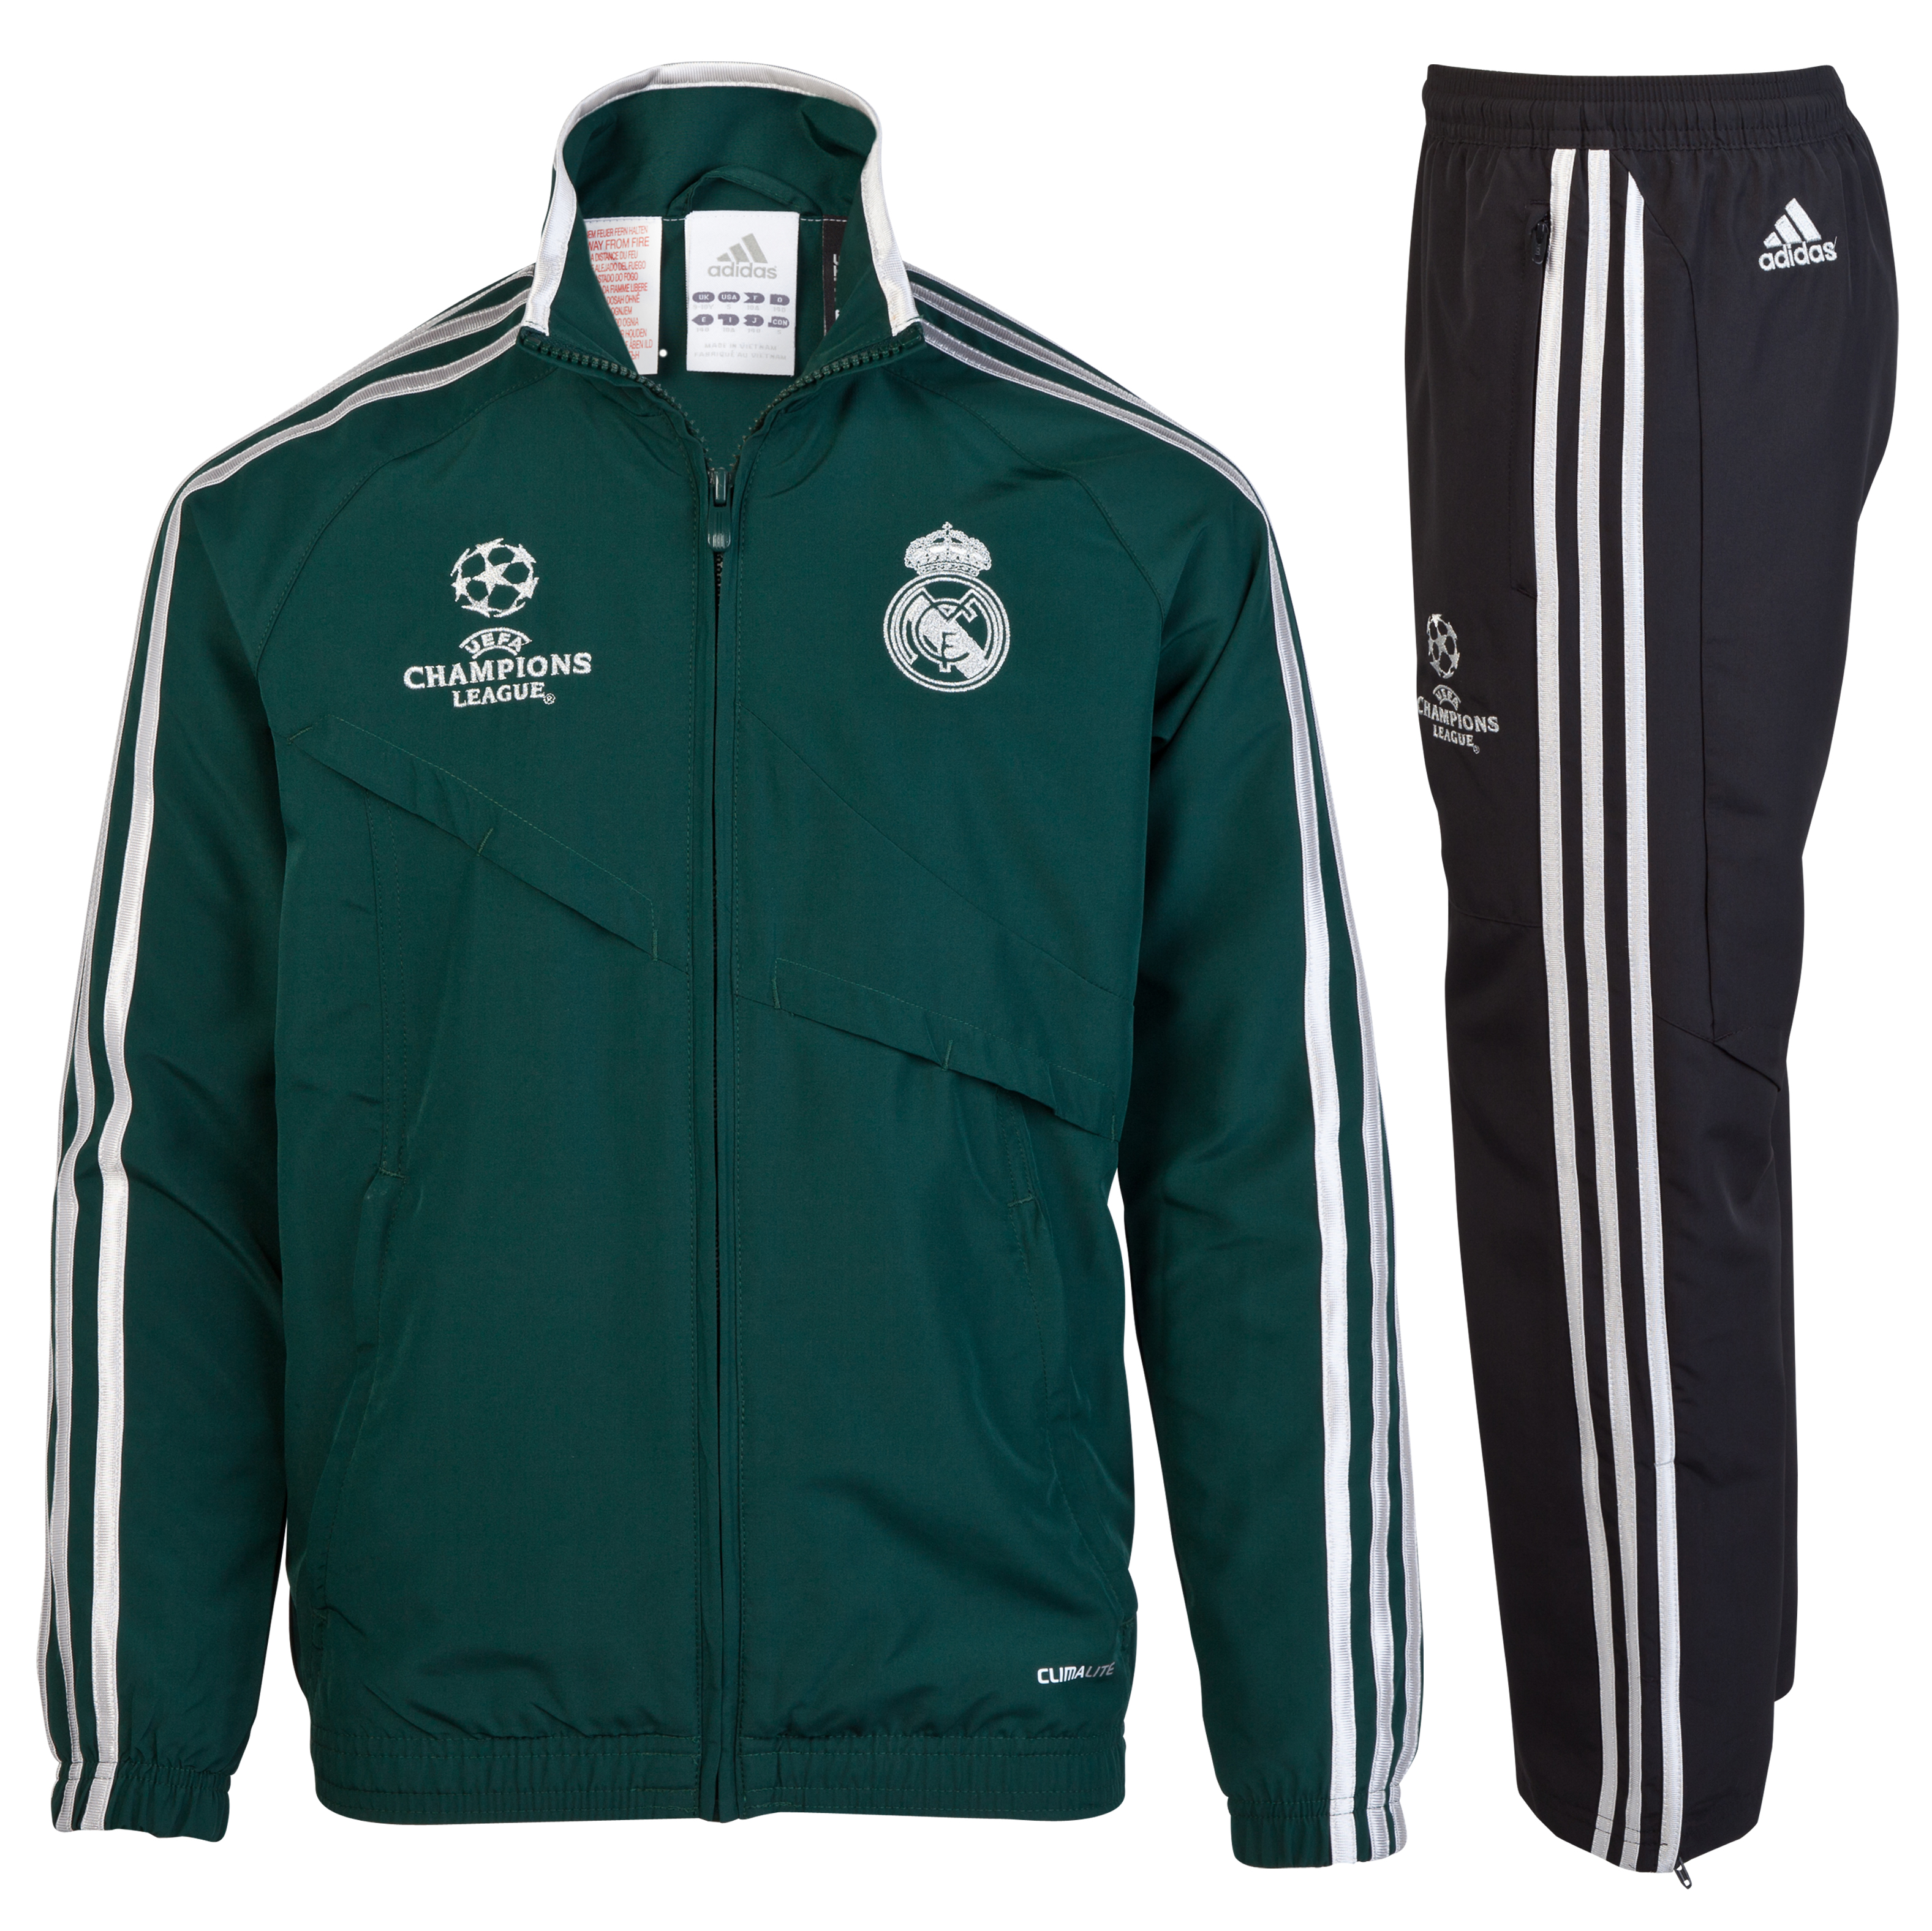 Traje de Presentacin Real Madrid de la Liga de Campeones - Cadete